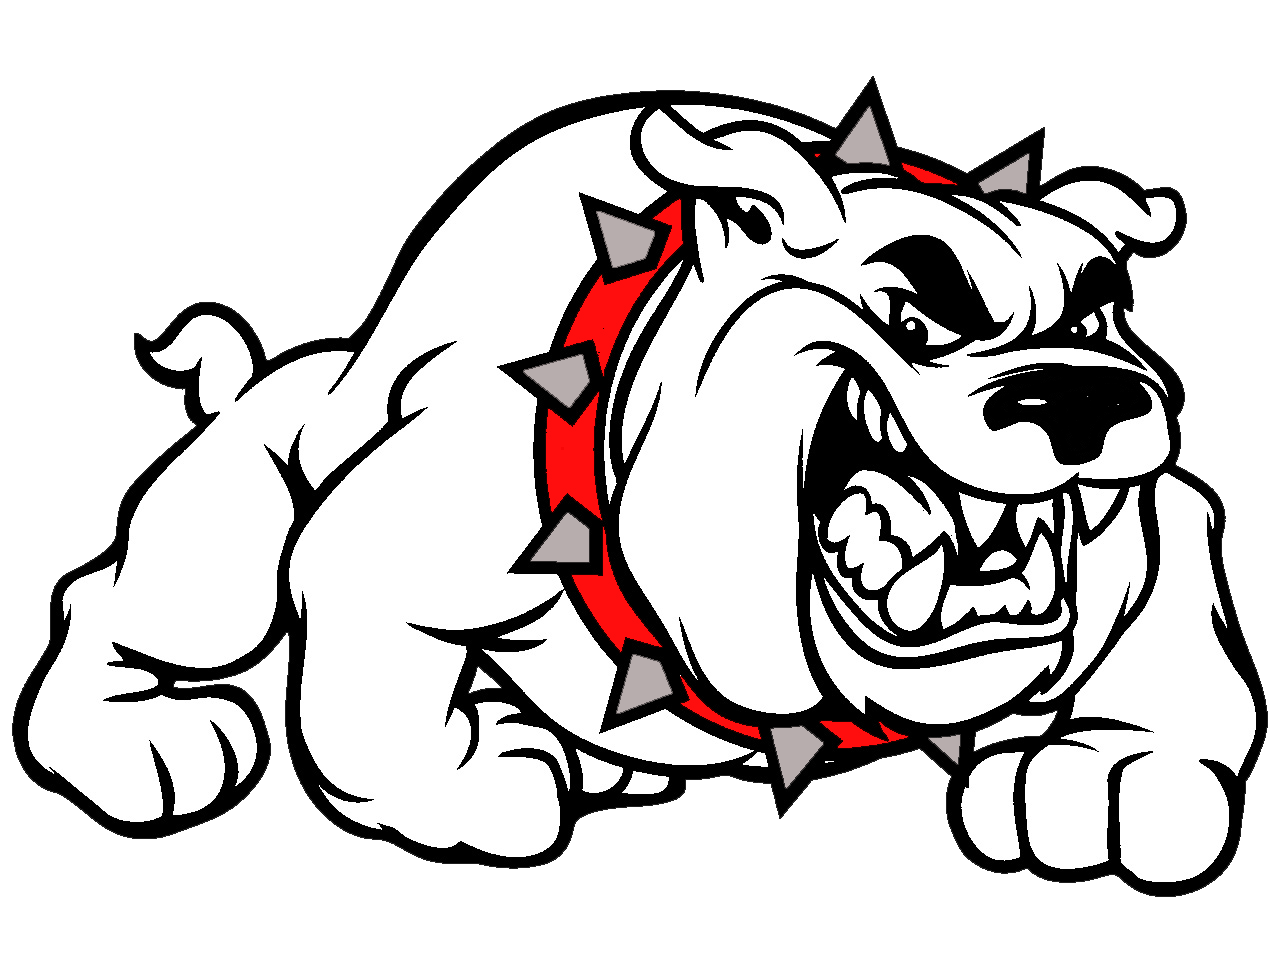 Bulldog Vector Art - ClipArt Best